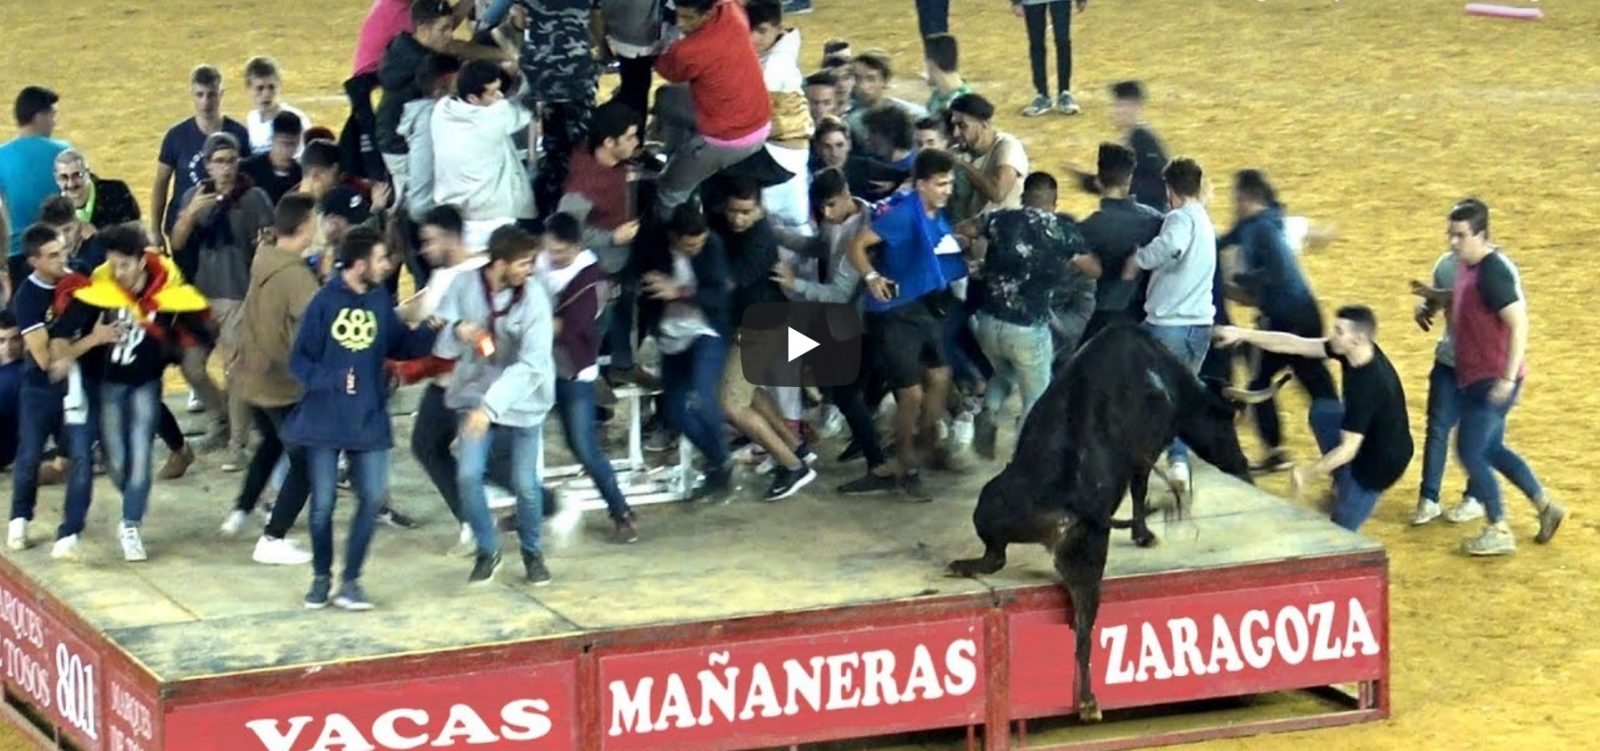 VIDEO // ZARAGOZA – Mañanas Vaquilleras (Video : TOROS SAM VALENCIA)